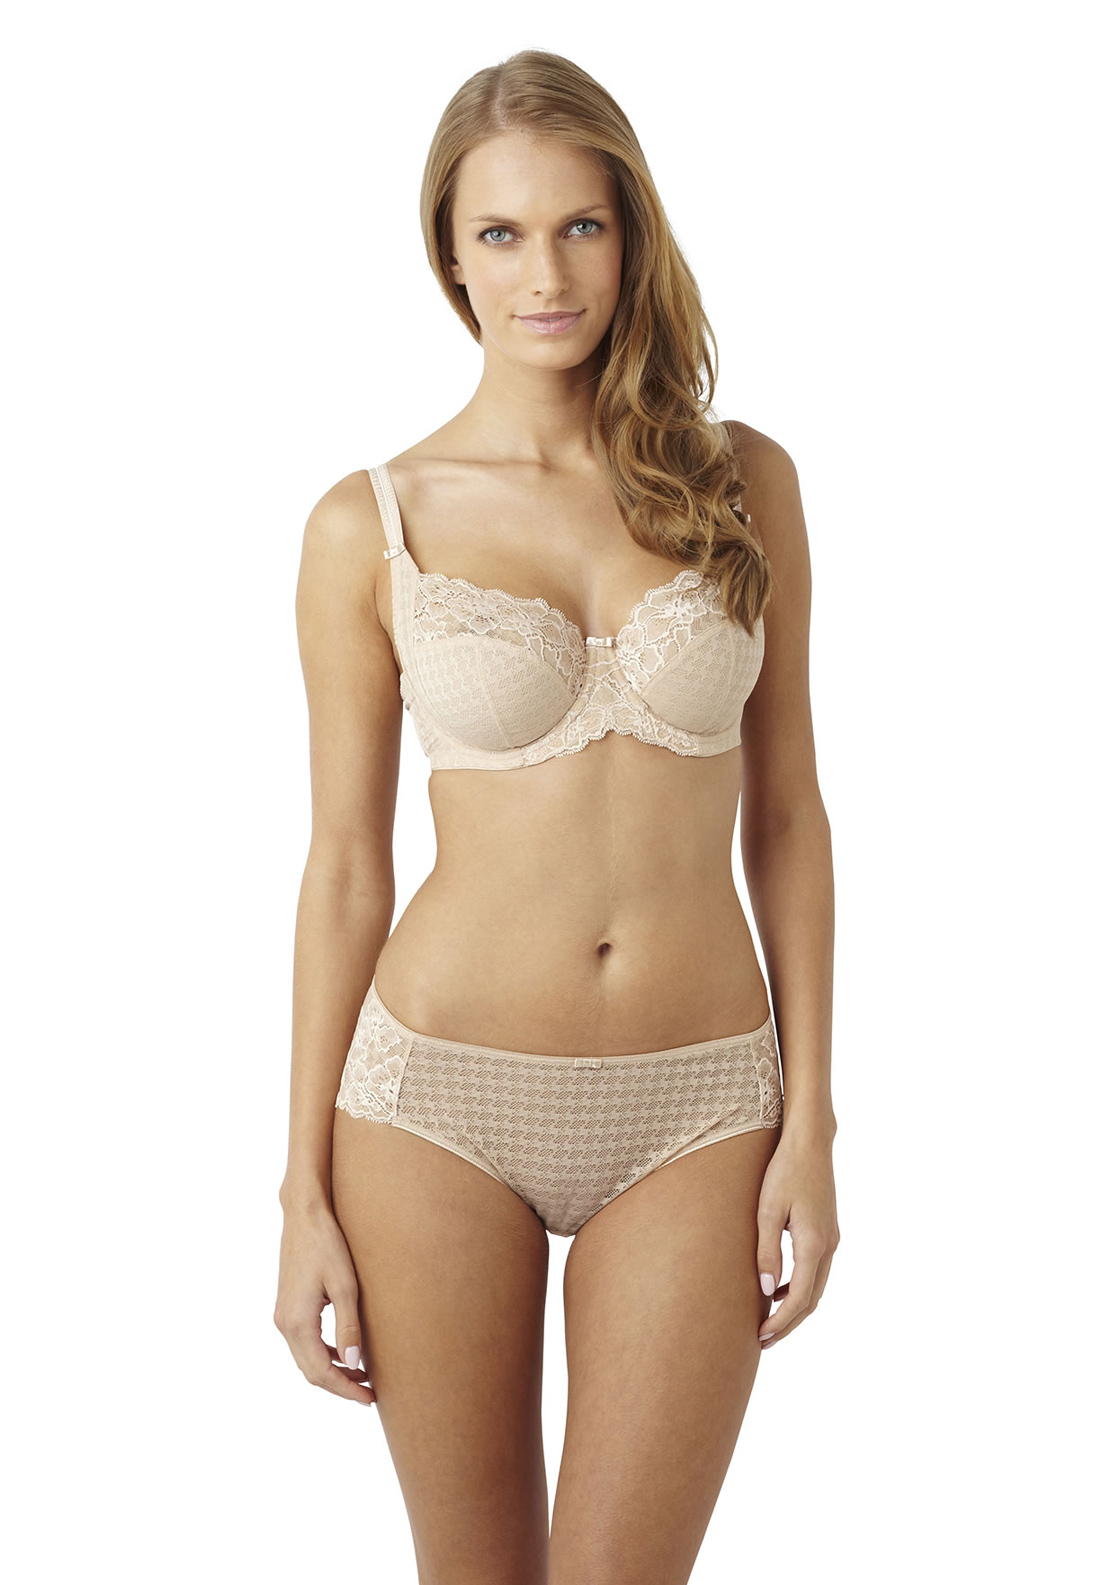 Panache Envy Houndstooth Print Lace Briefs, Nude